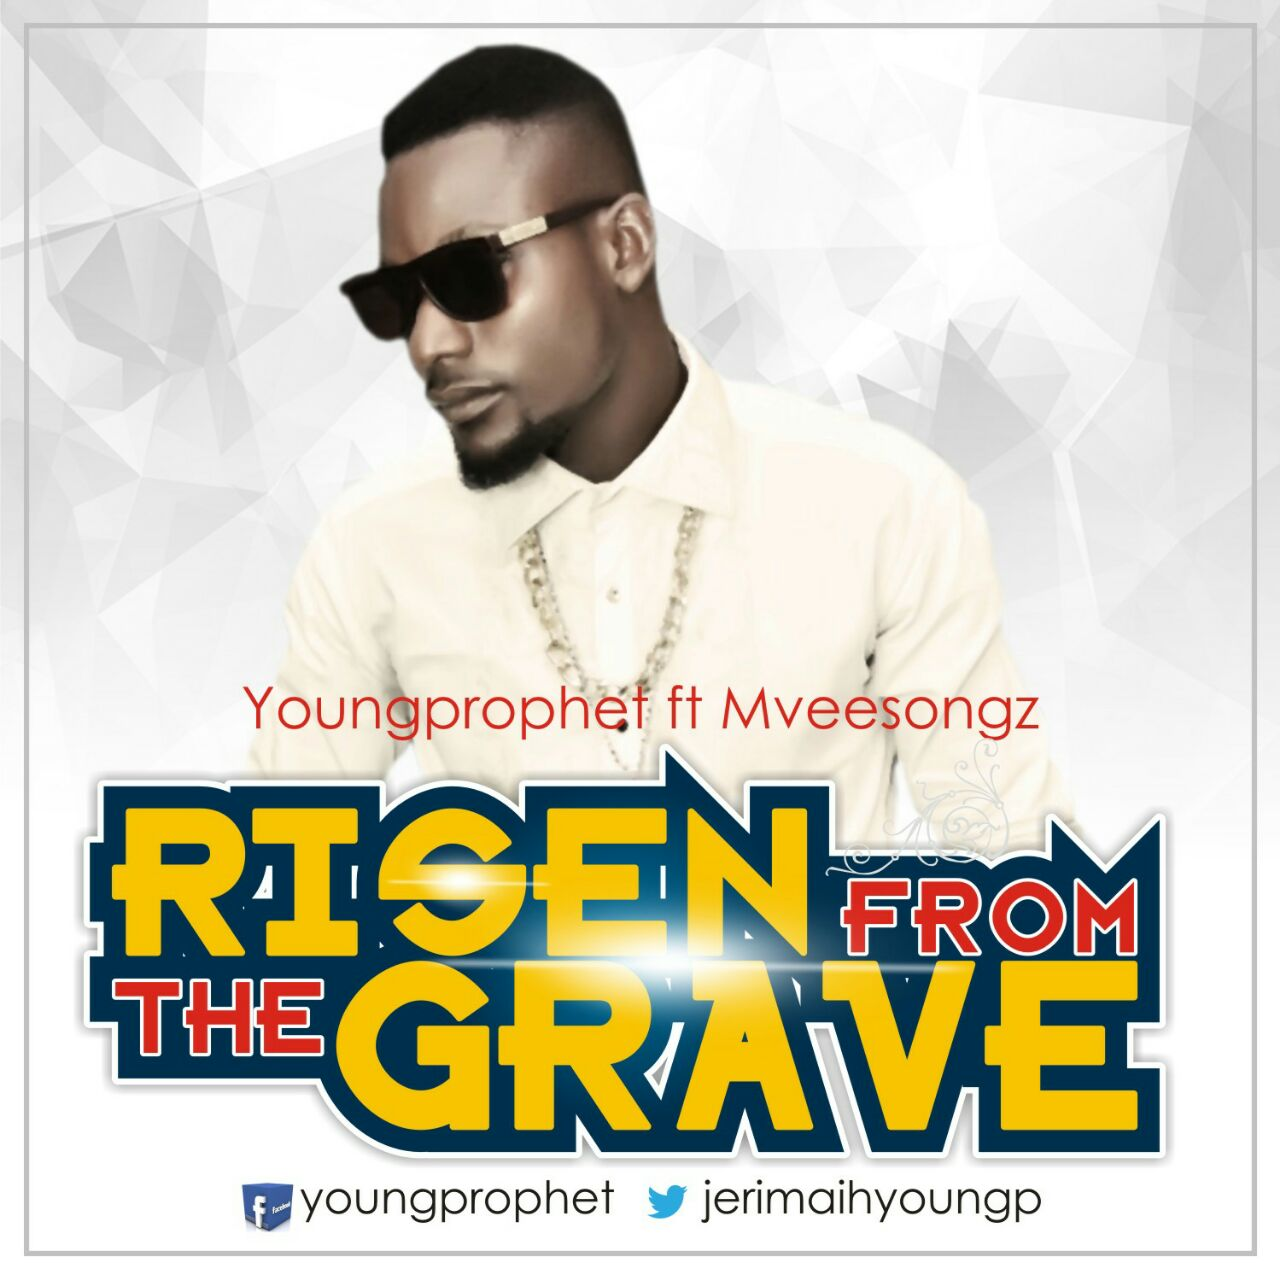 RISEN FROM THE GRAVE - Young Prophet [@JerimaihYoungp] ft Mvee  [@MVeesong]